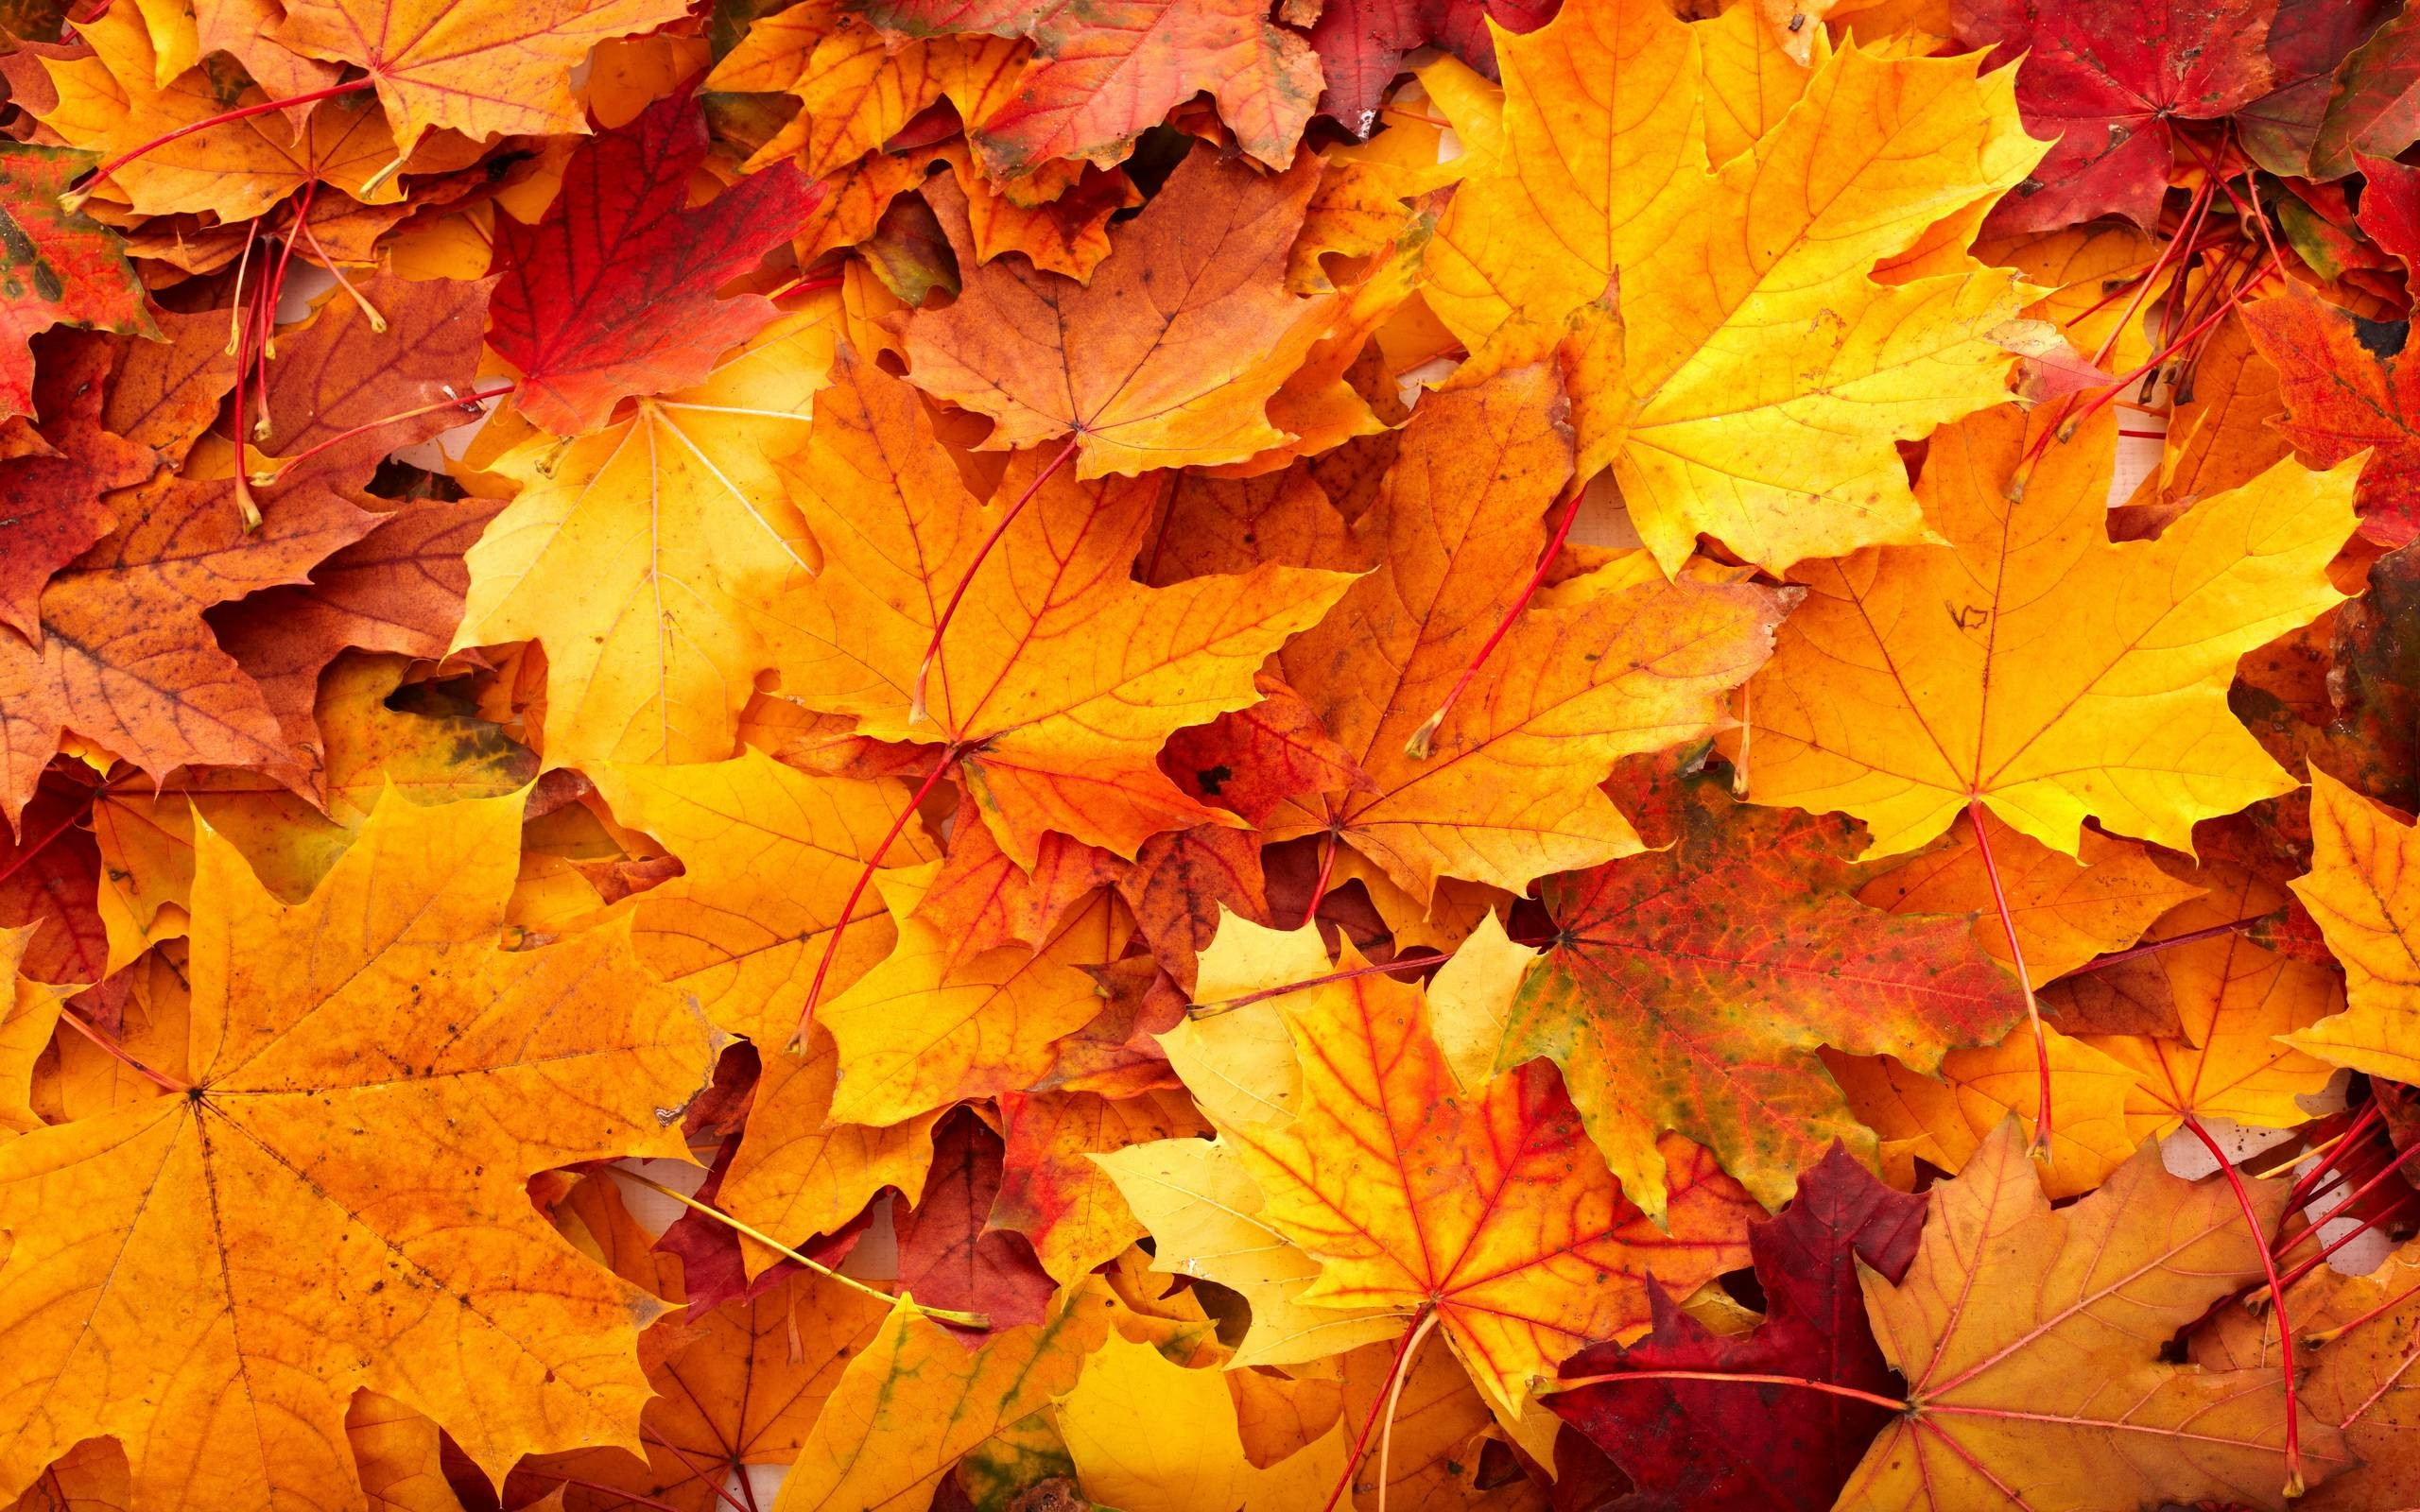 It's just a picture of Clever Fall Leaf Background